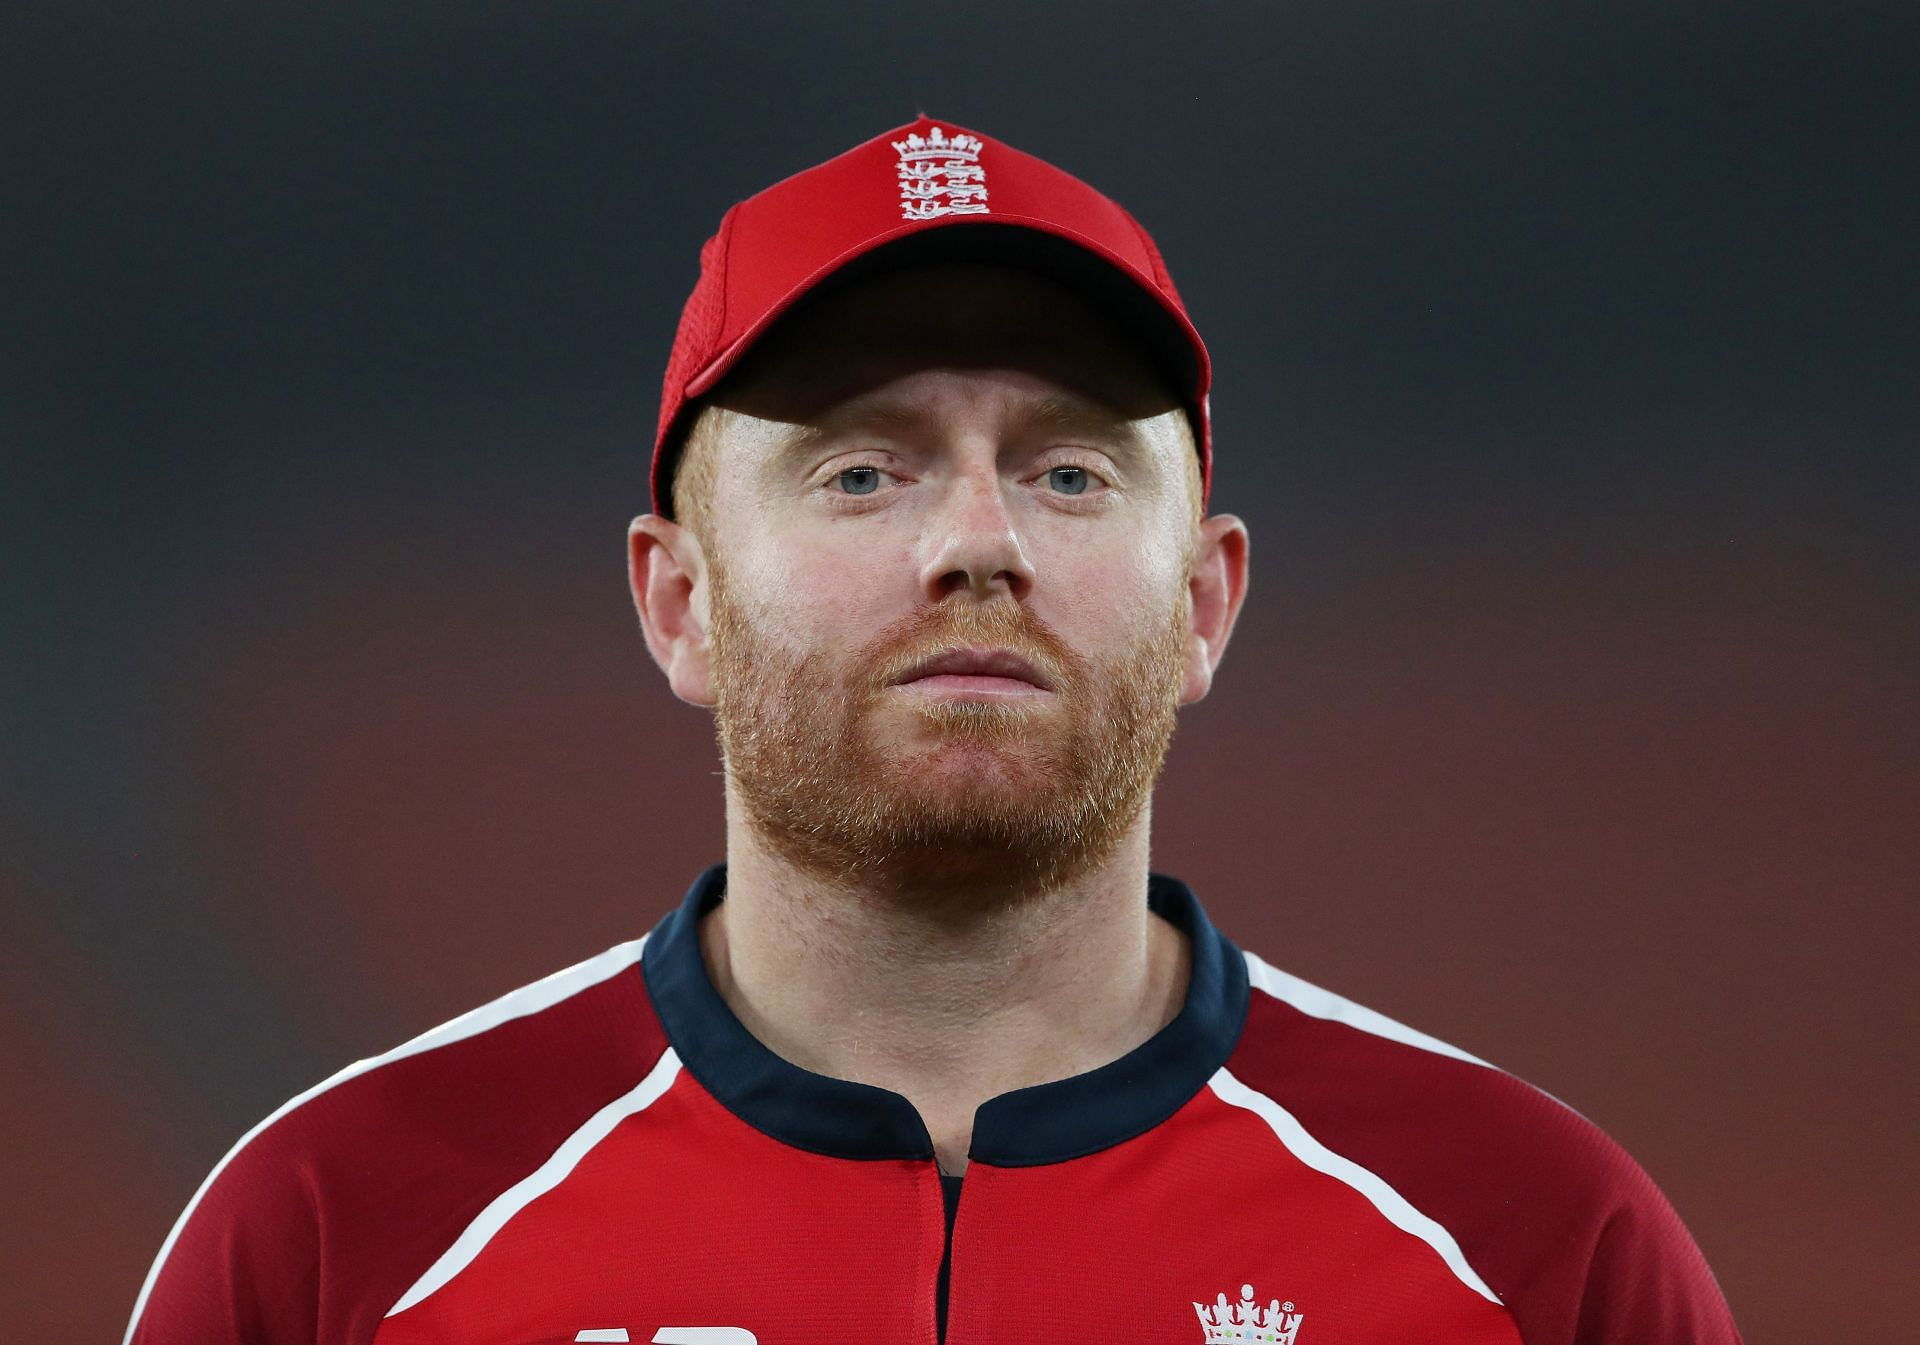 Bairstow's impact at the top of the order will be crucial at the T20 World Cup